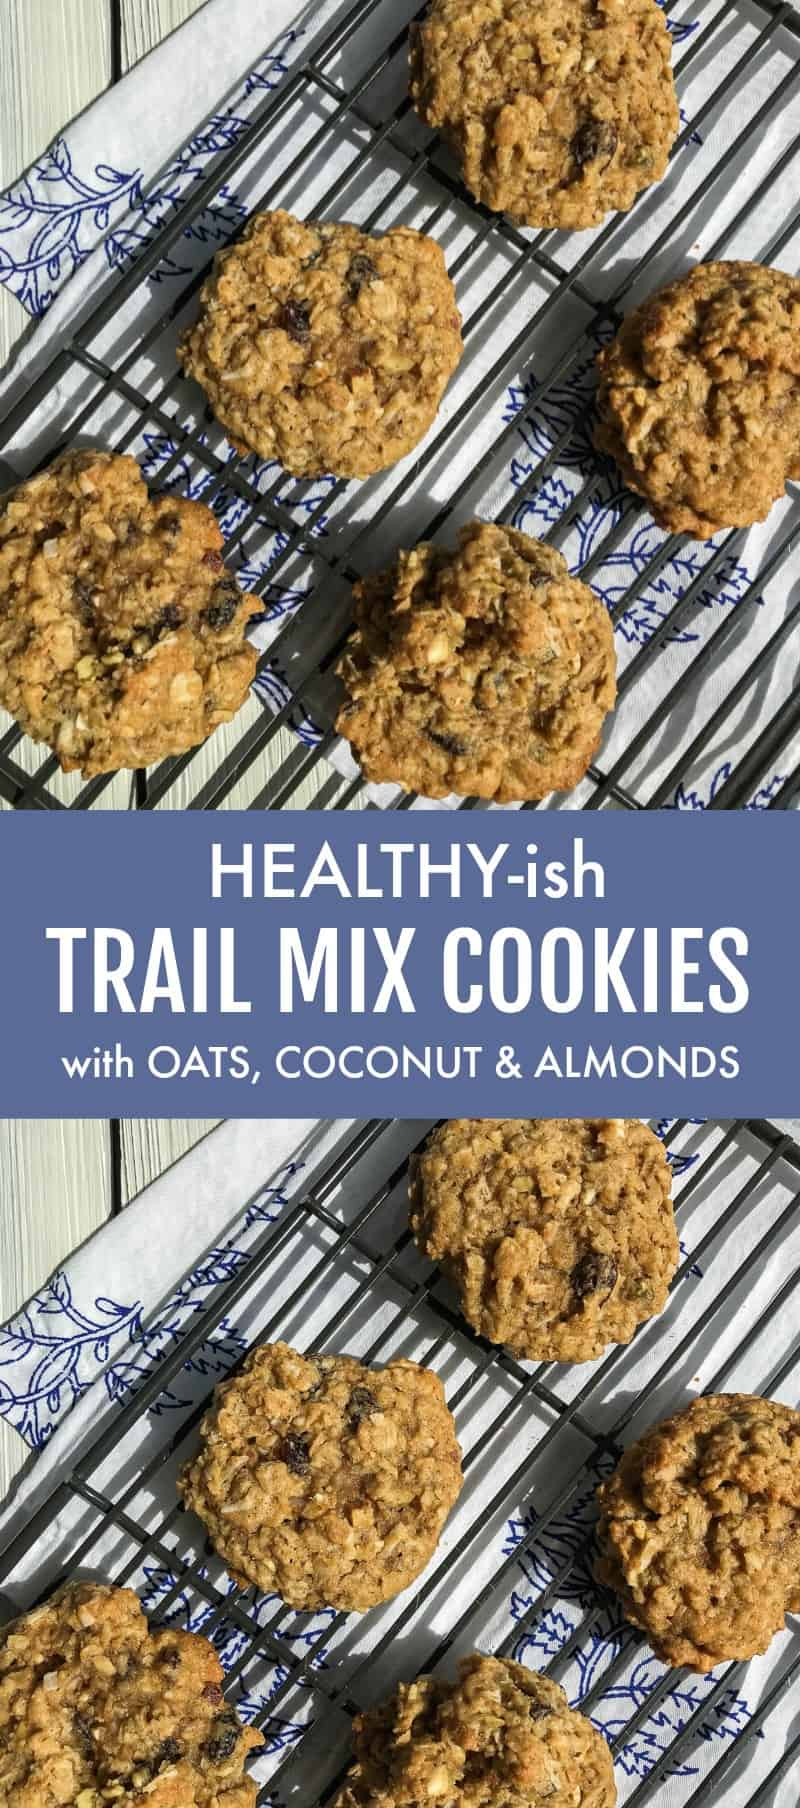 Healthy-ish Trail Mix Oatmeal Cookies with Coconut and Toasted Almonds | 31Daily.com